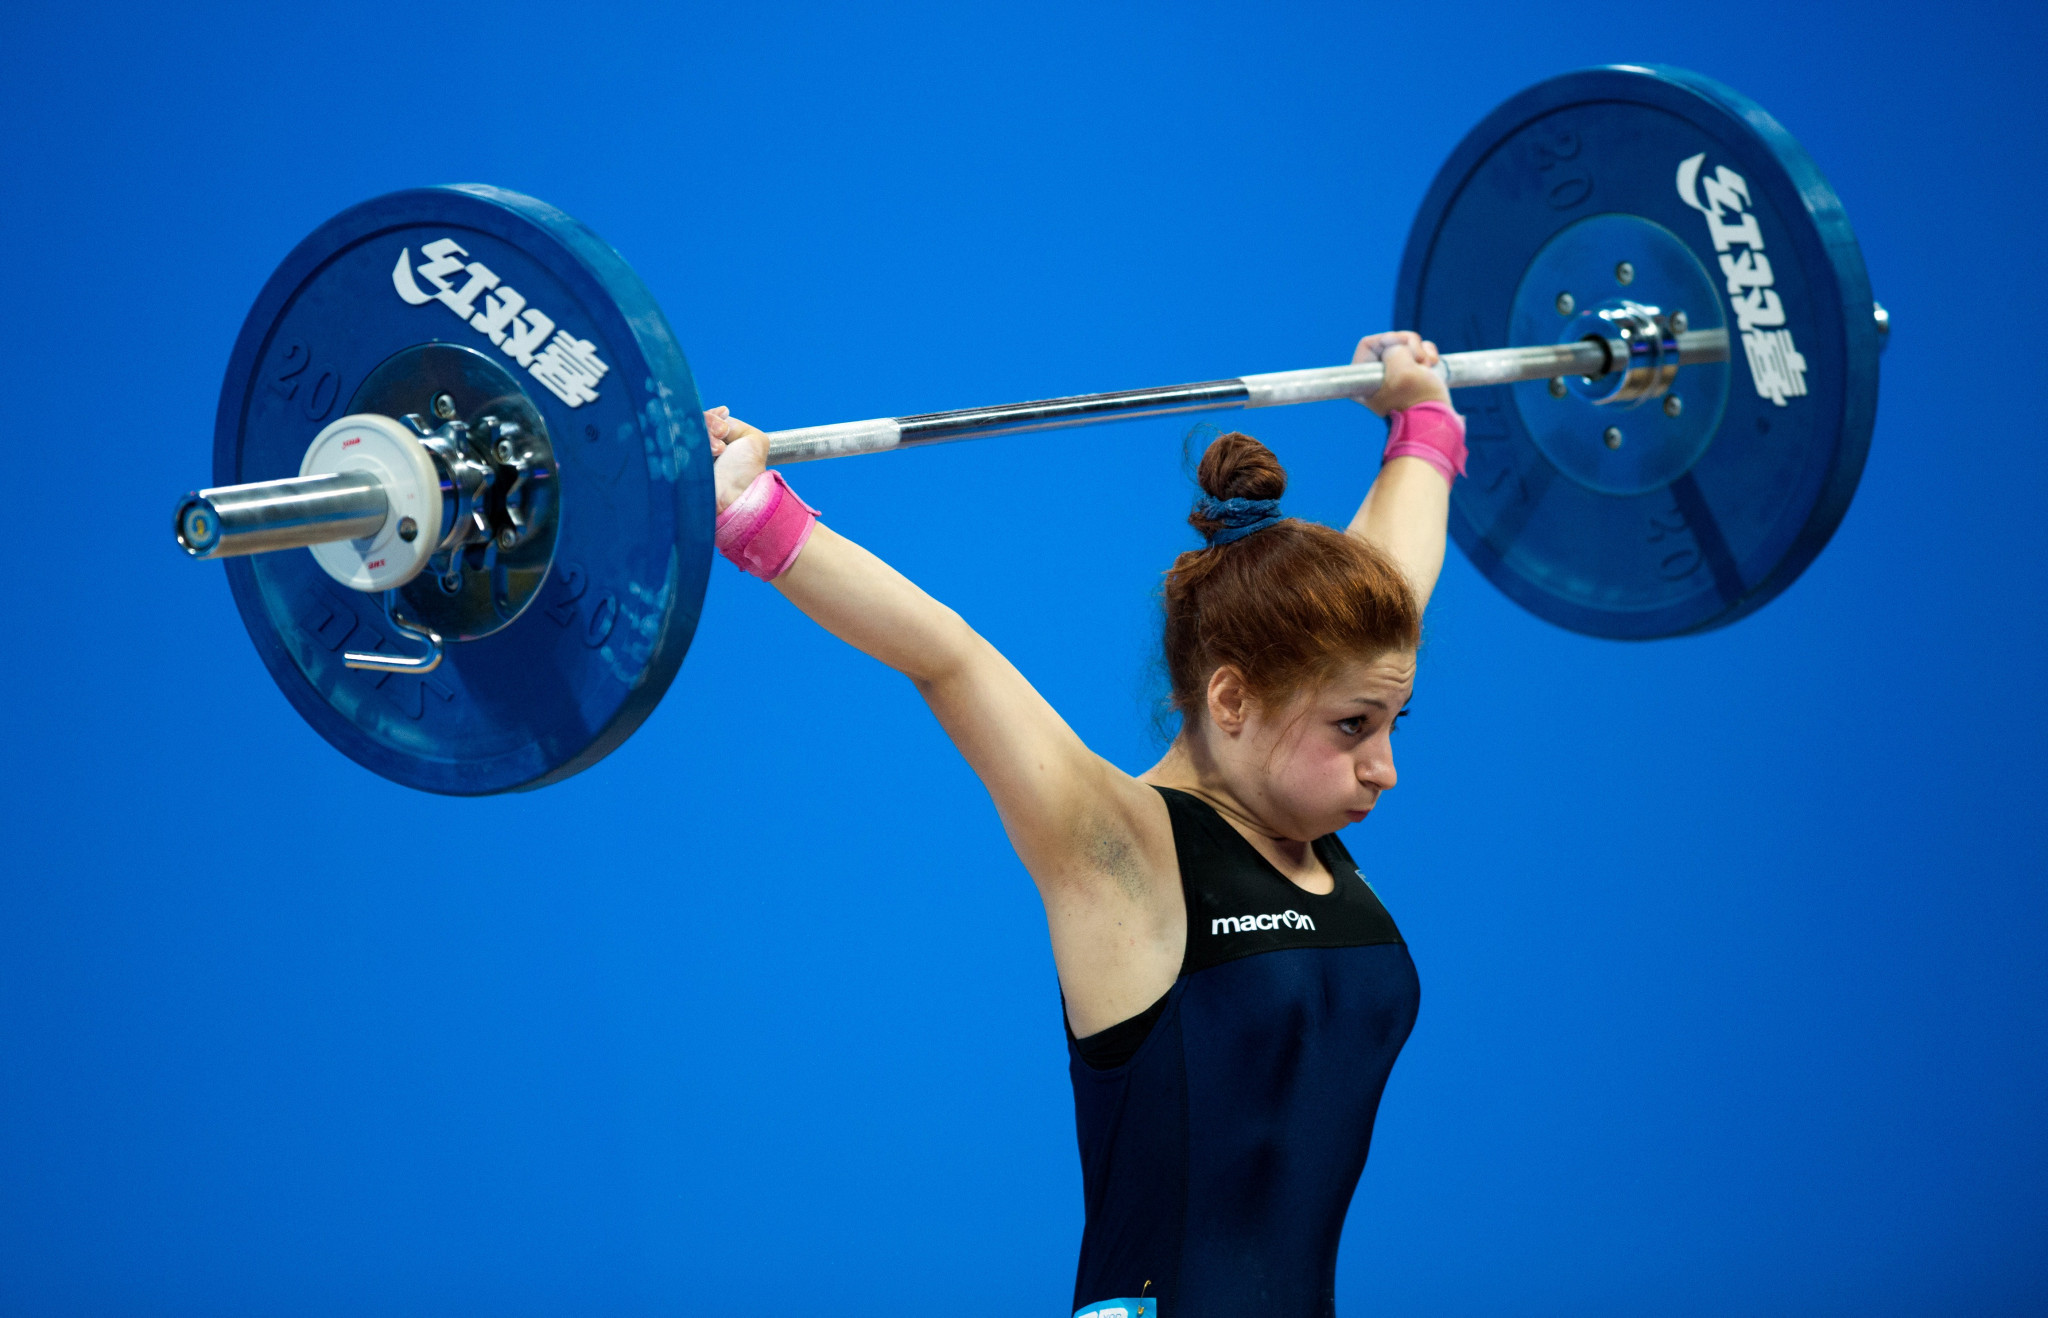 Alessandra Pagliaro was the best in both the snatch and clean and jerk ©Getty Images